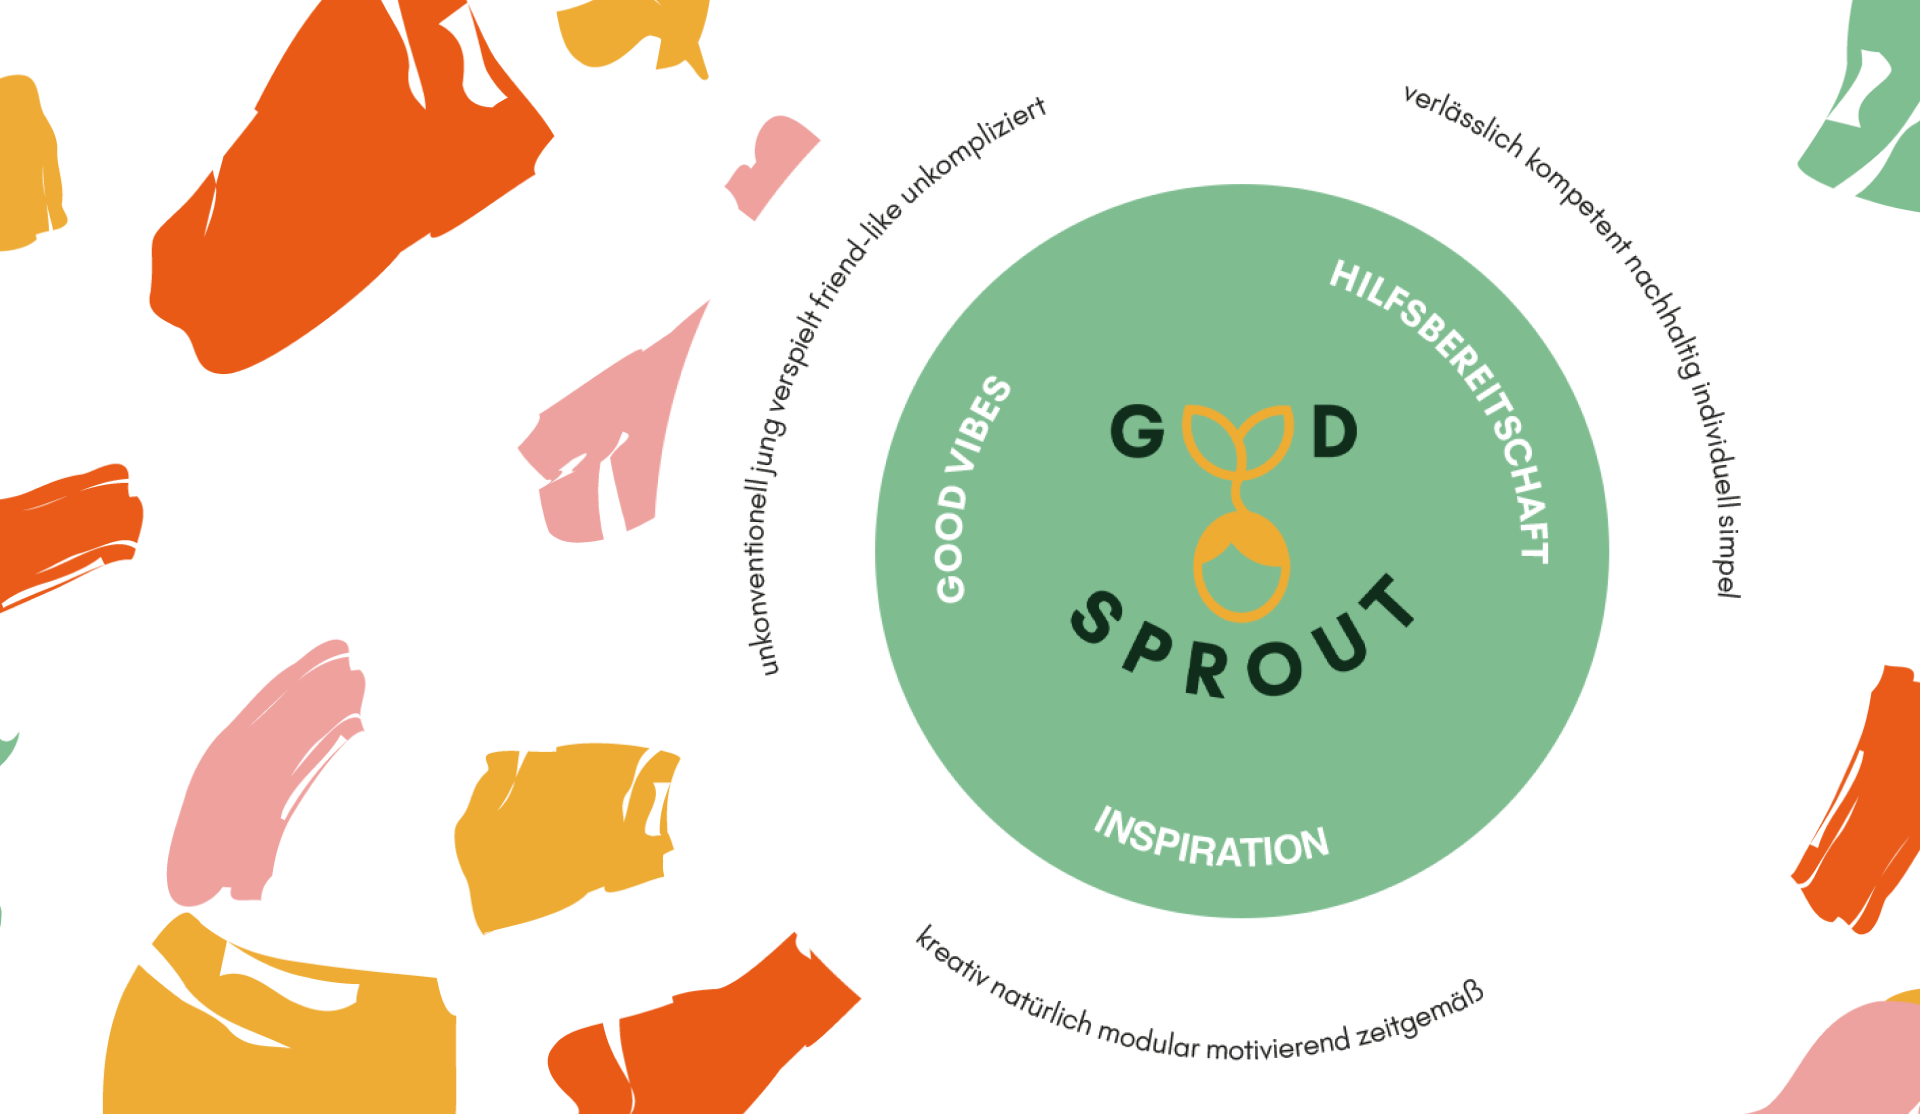 Projekt Good Sprout 4